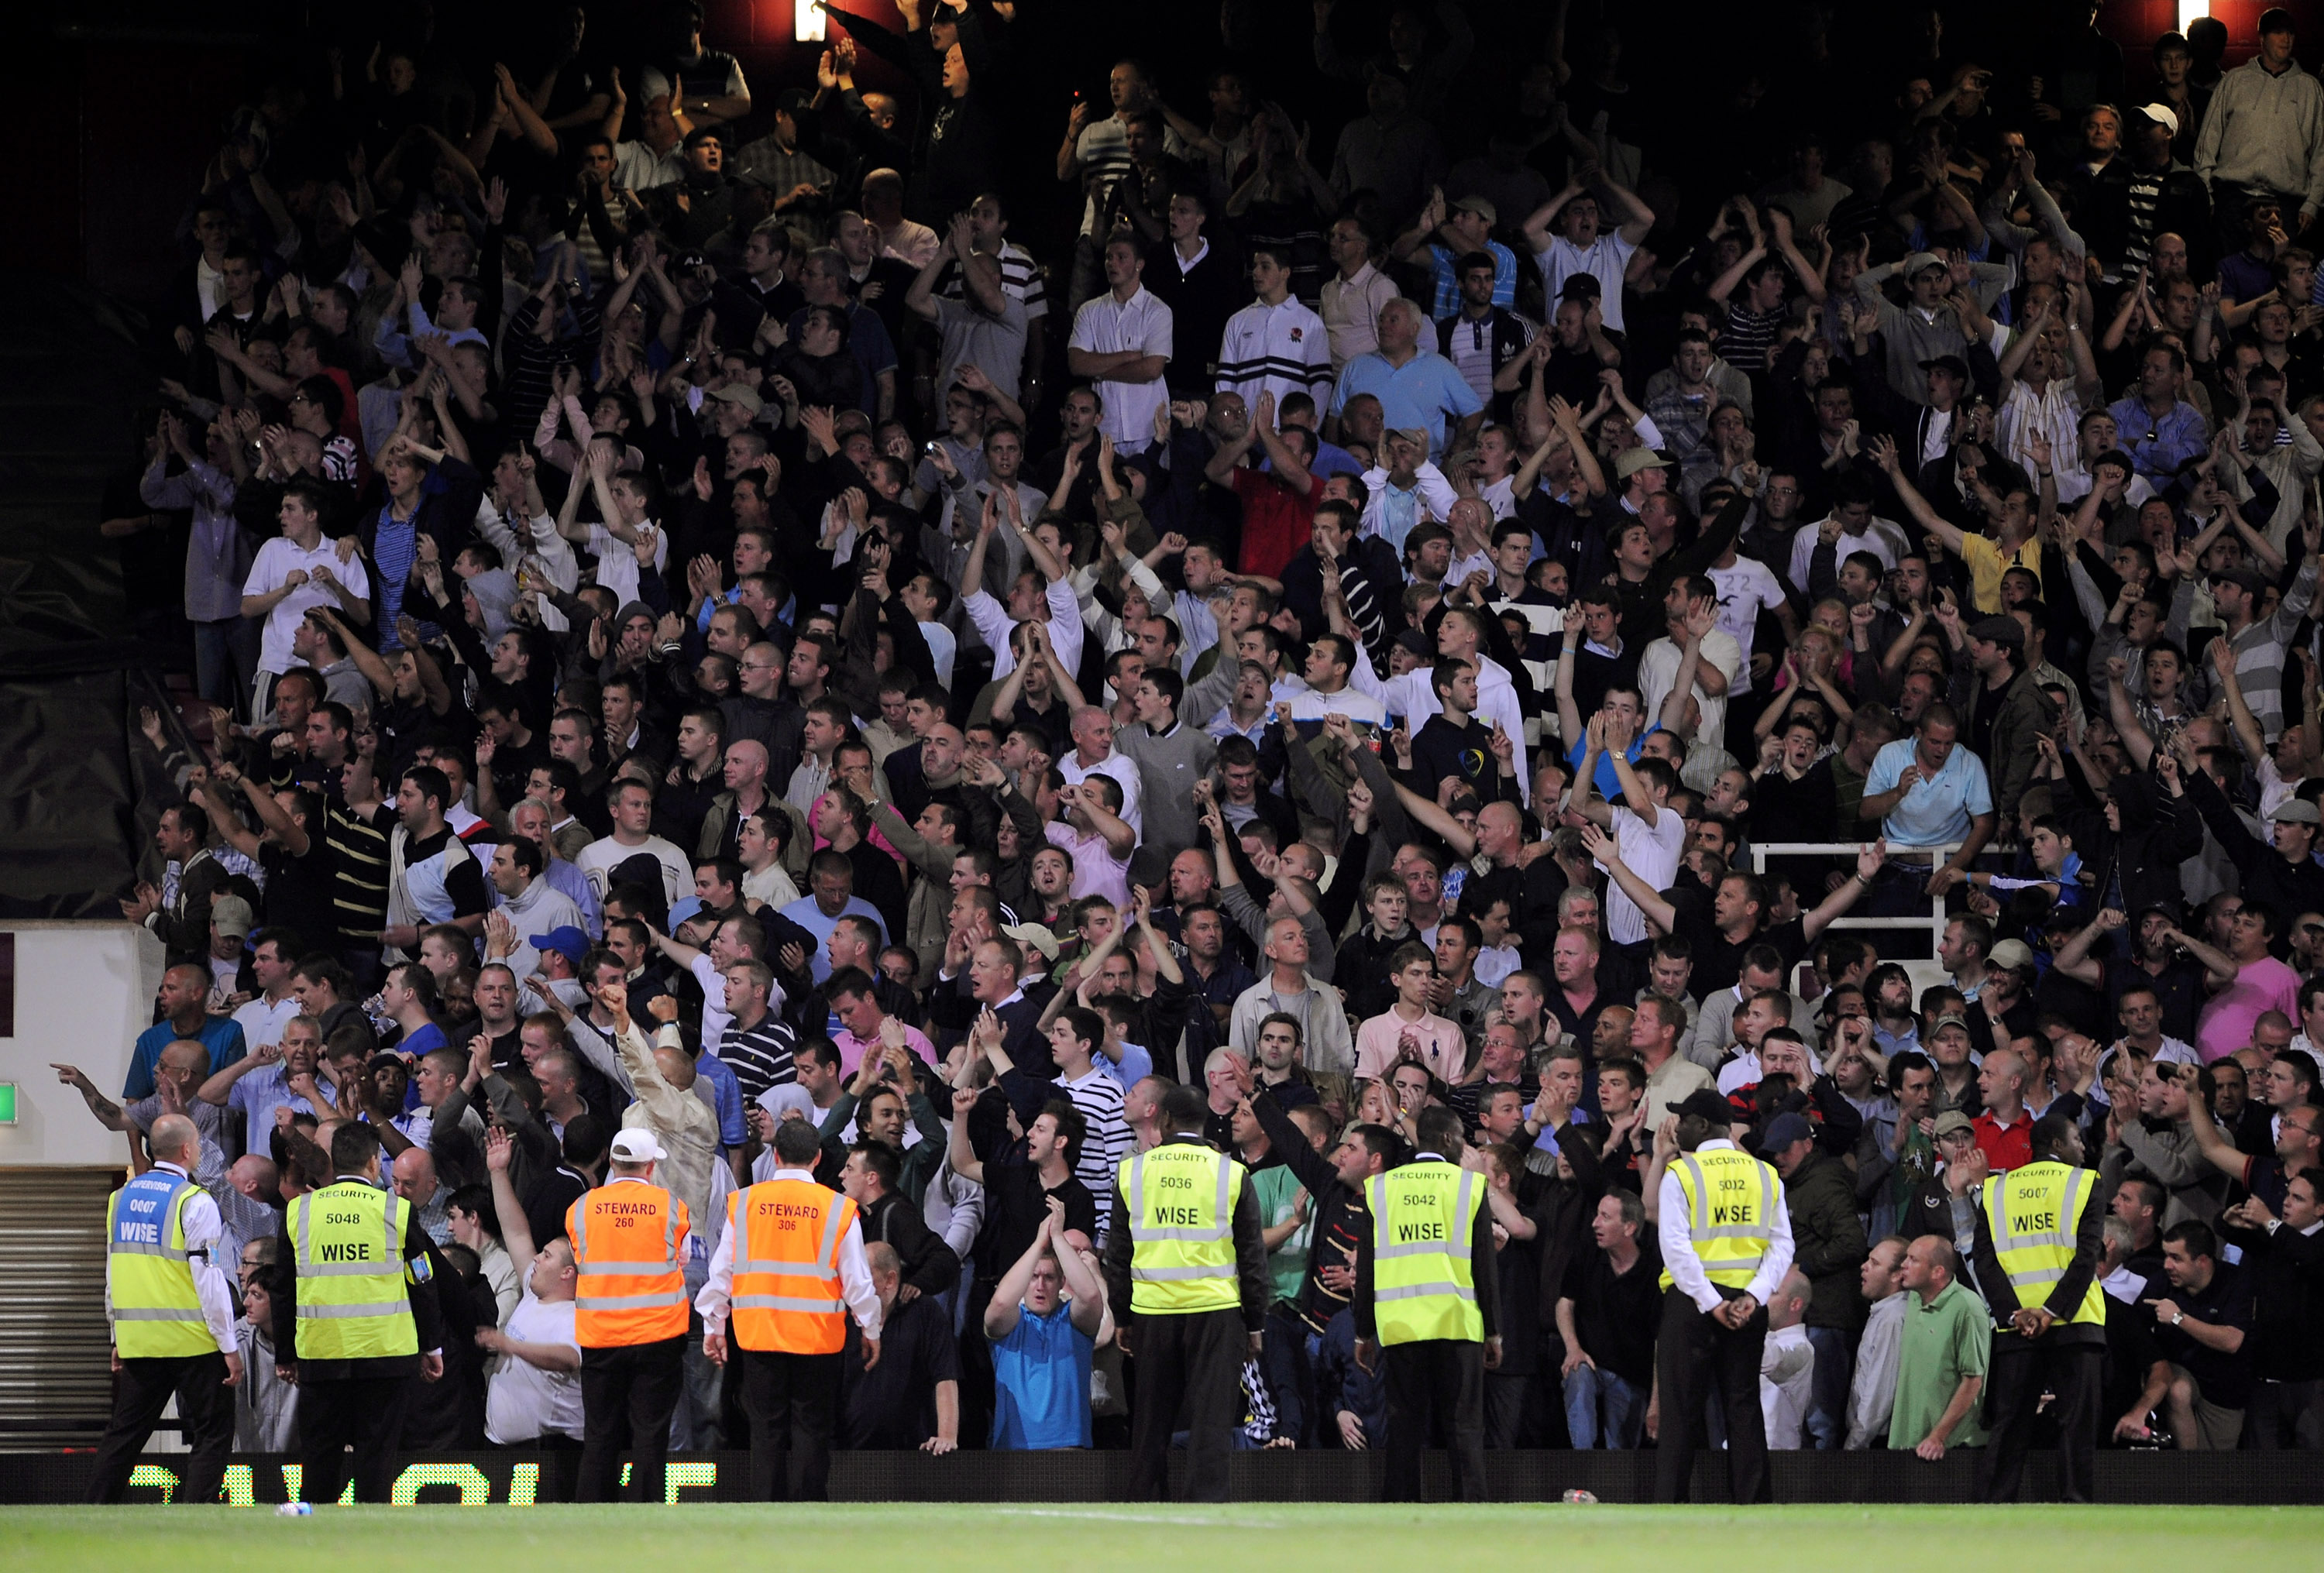 LONDON, ENGLAND - AUGUST 25:  Stewards stand infront of the Millwall fans during the Carling Cup second round match between West Ham United and Millwall at Upton Park on August 25, 2009 in London, England. . Violence broke out between West Ham and Millwal